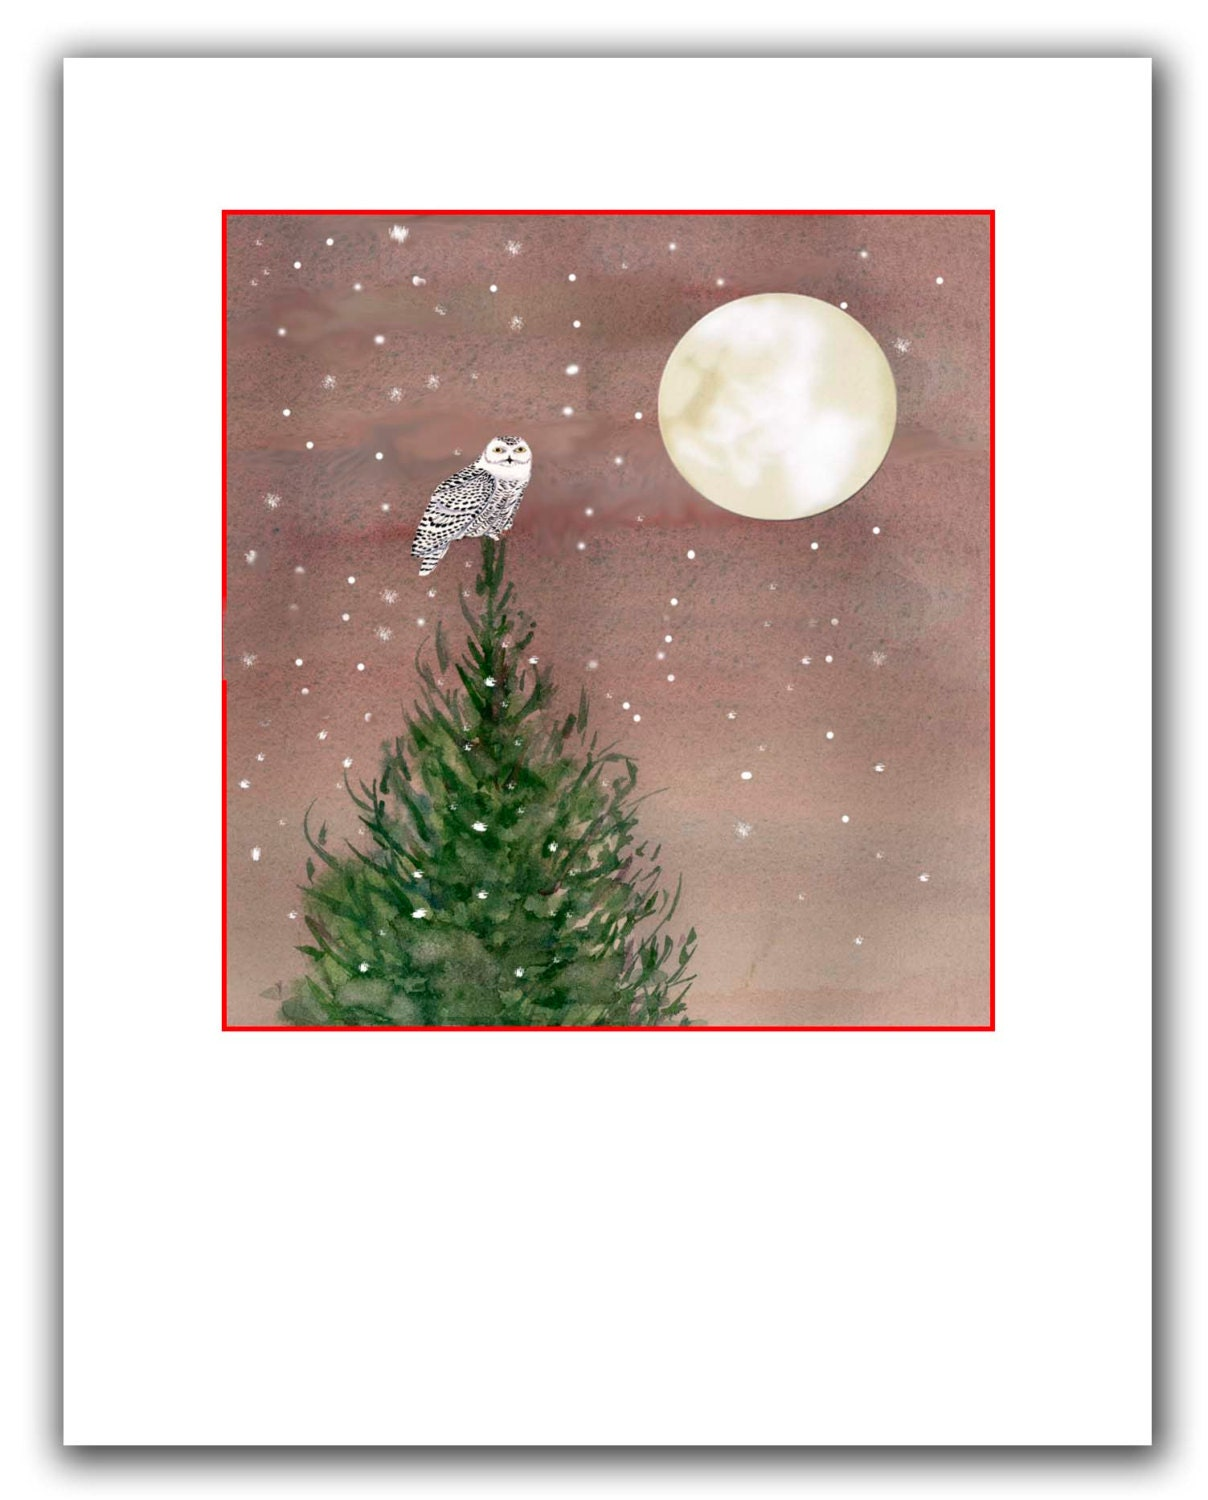 Snowy owl Christmas cards. 10 per boxed set.woodland cards